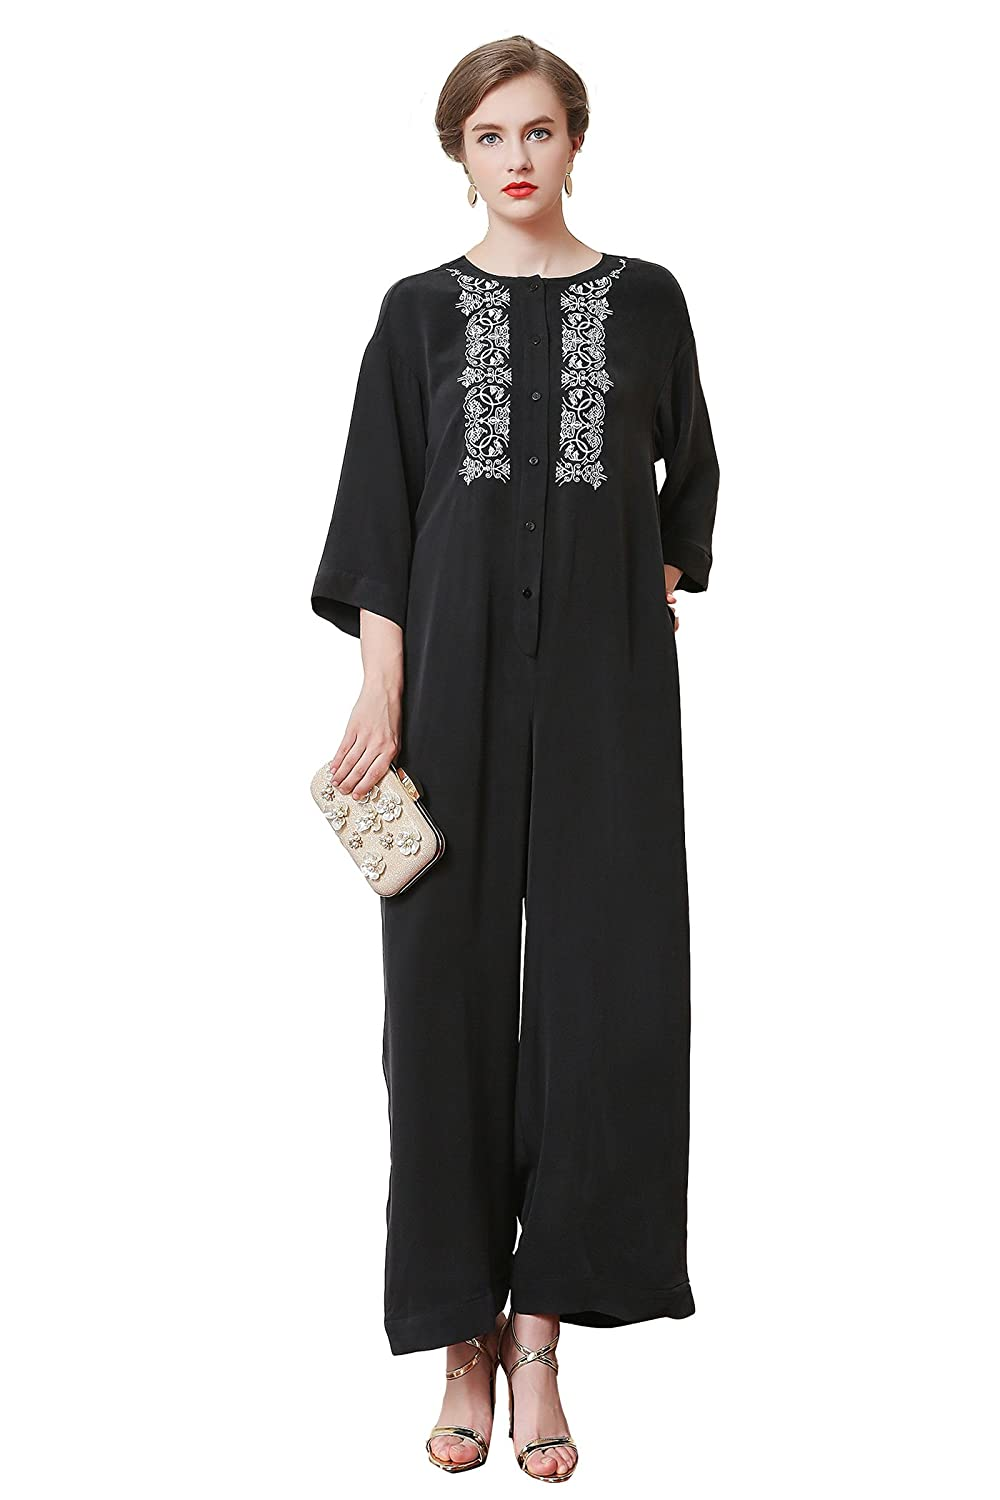 05283f0ad0b927 low-cost VOA Women s Black Silk Scoop Neck Long Sleeve Embroidery Jumpsuit  K7123